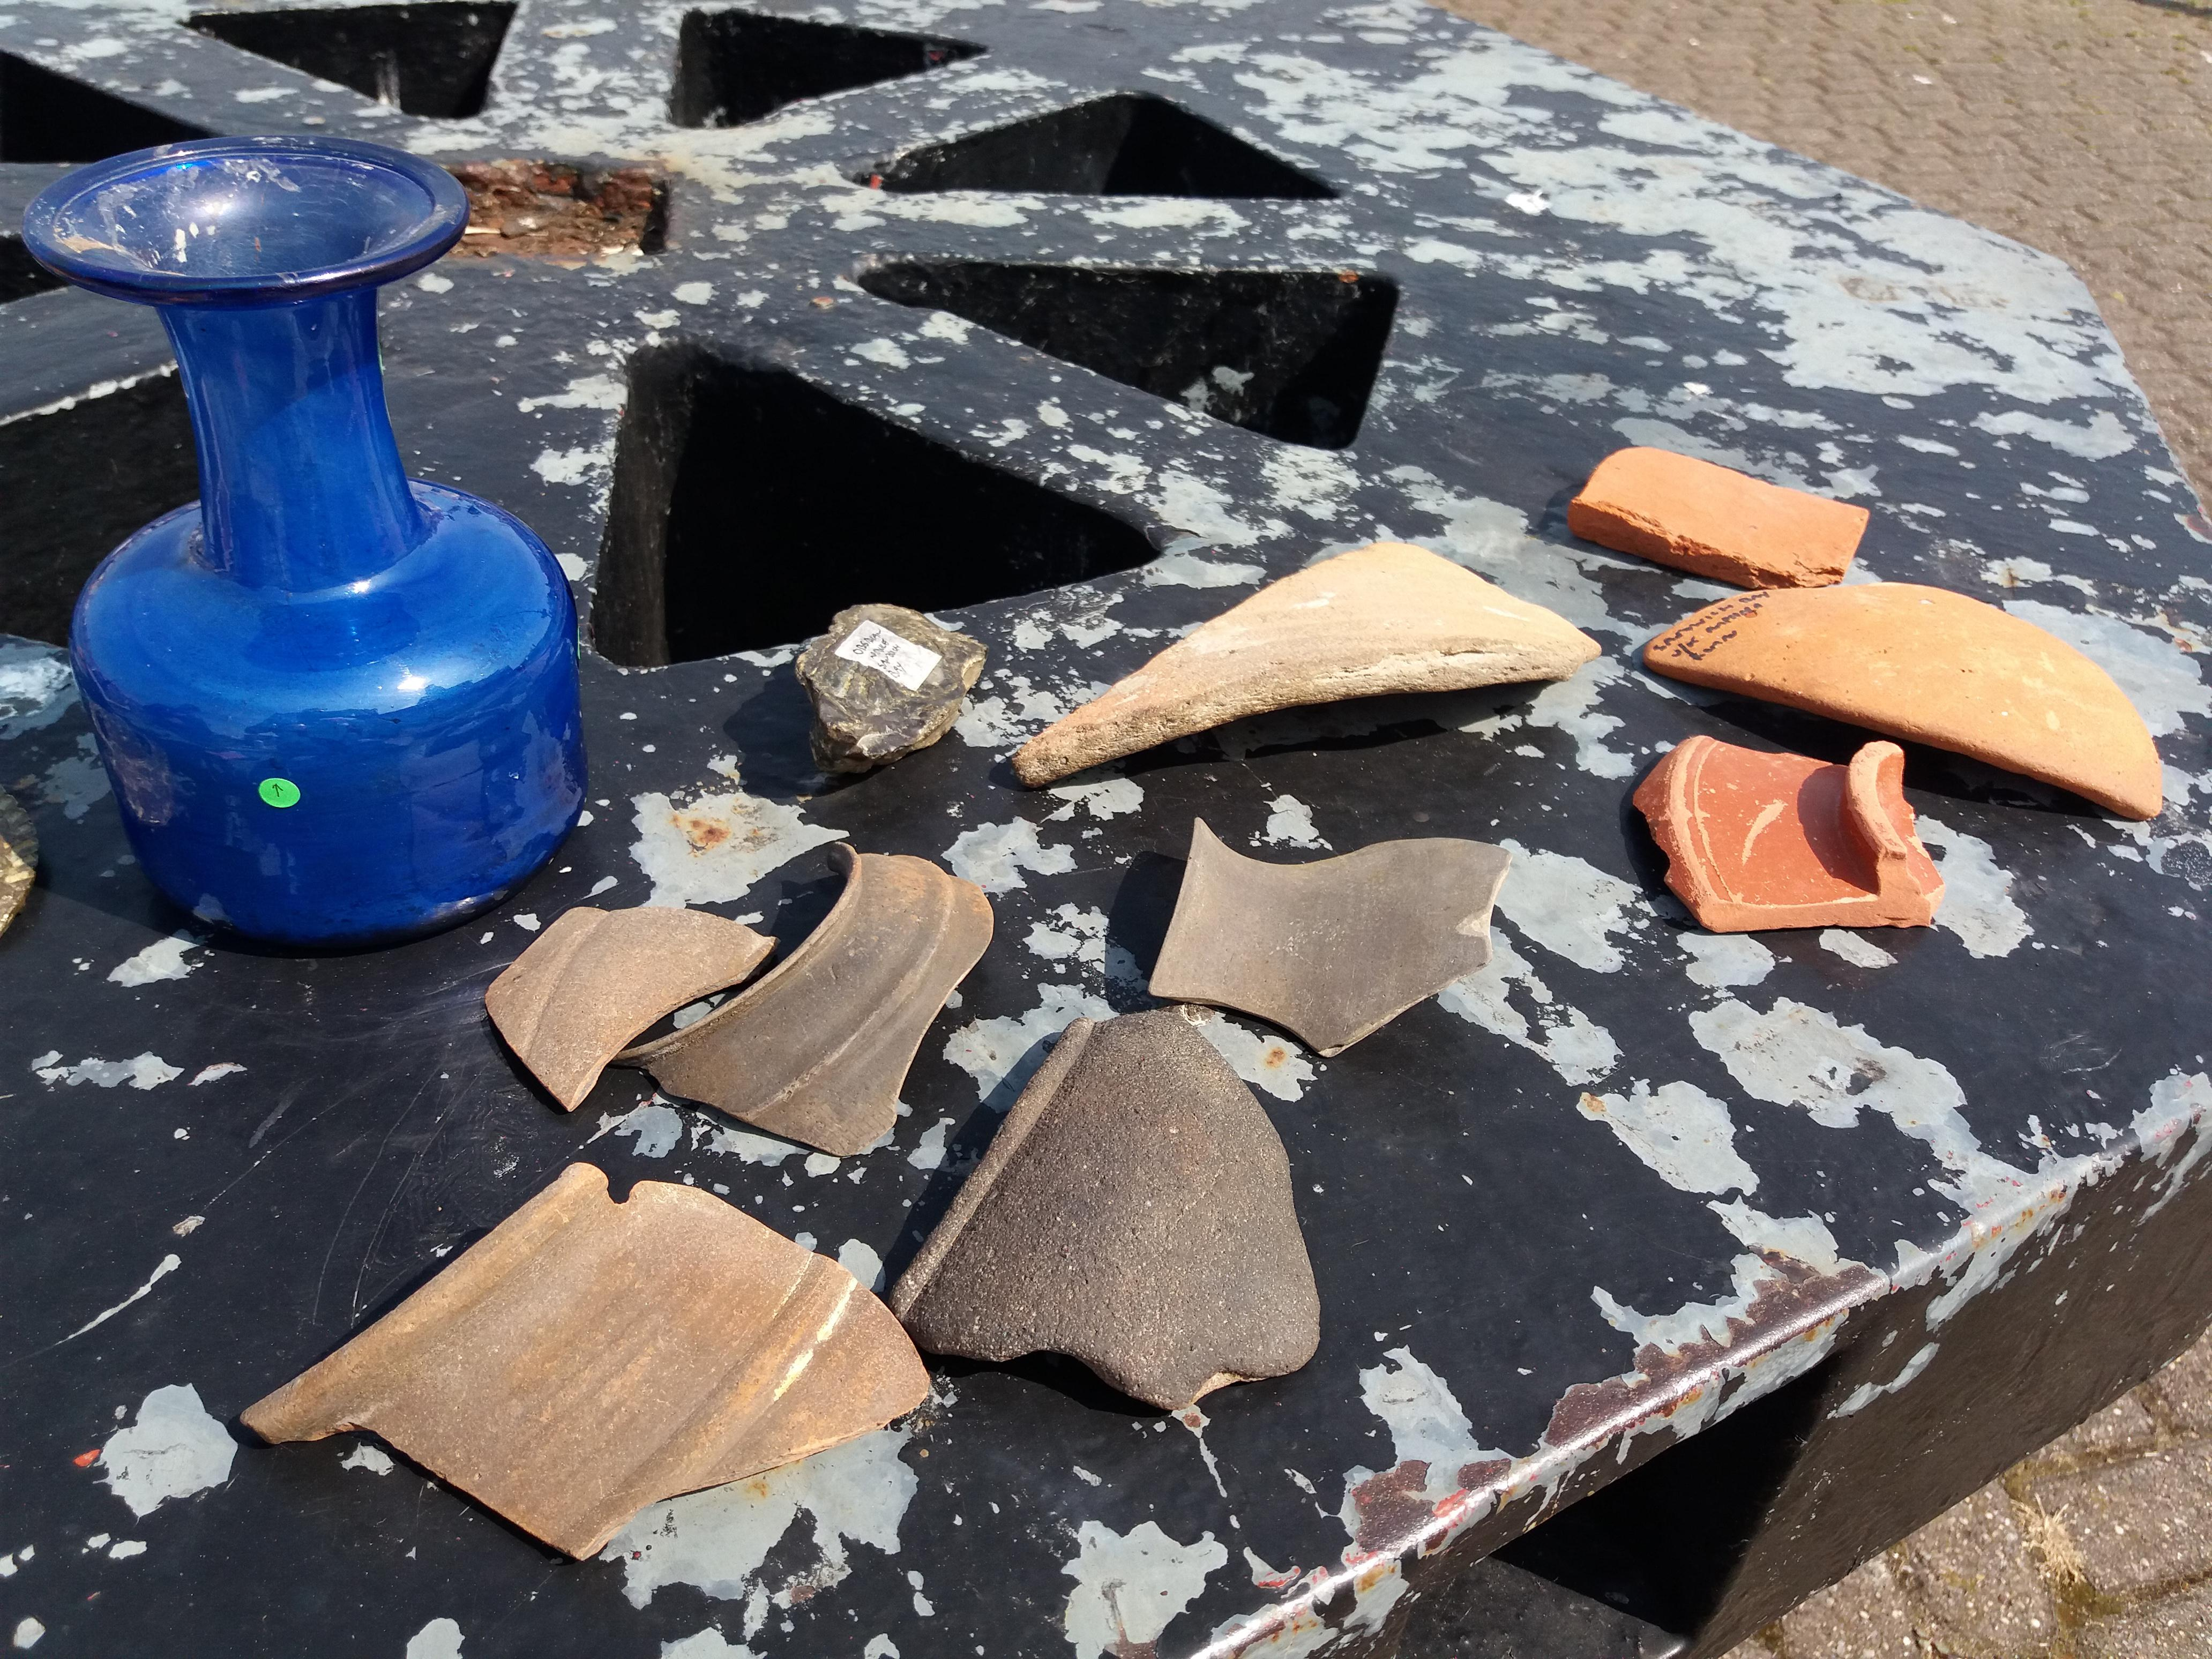 Kayaker finds rare Roman glass and pottery off Kent coast